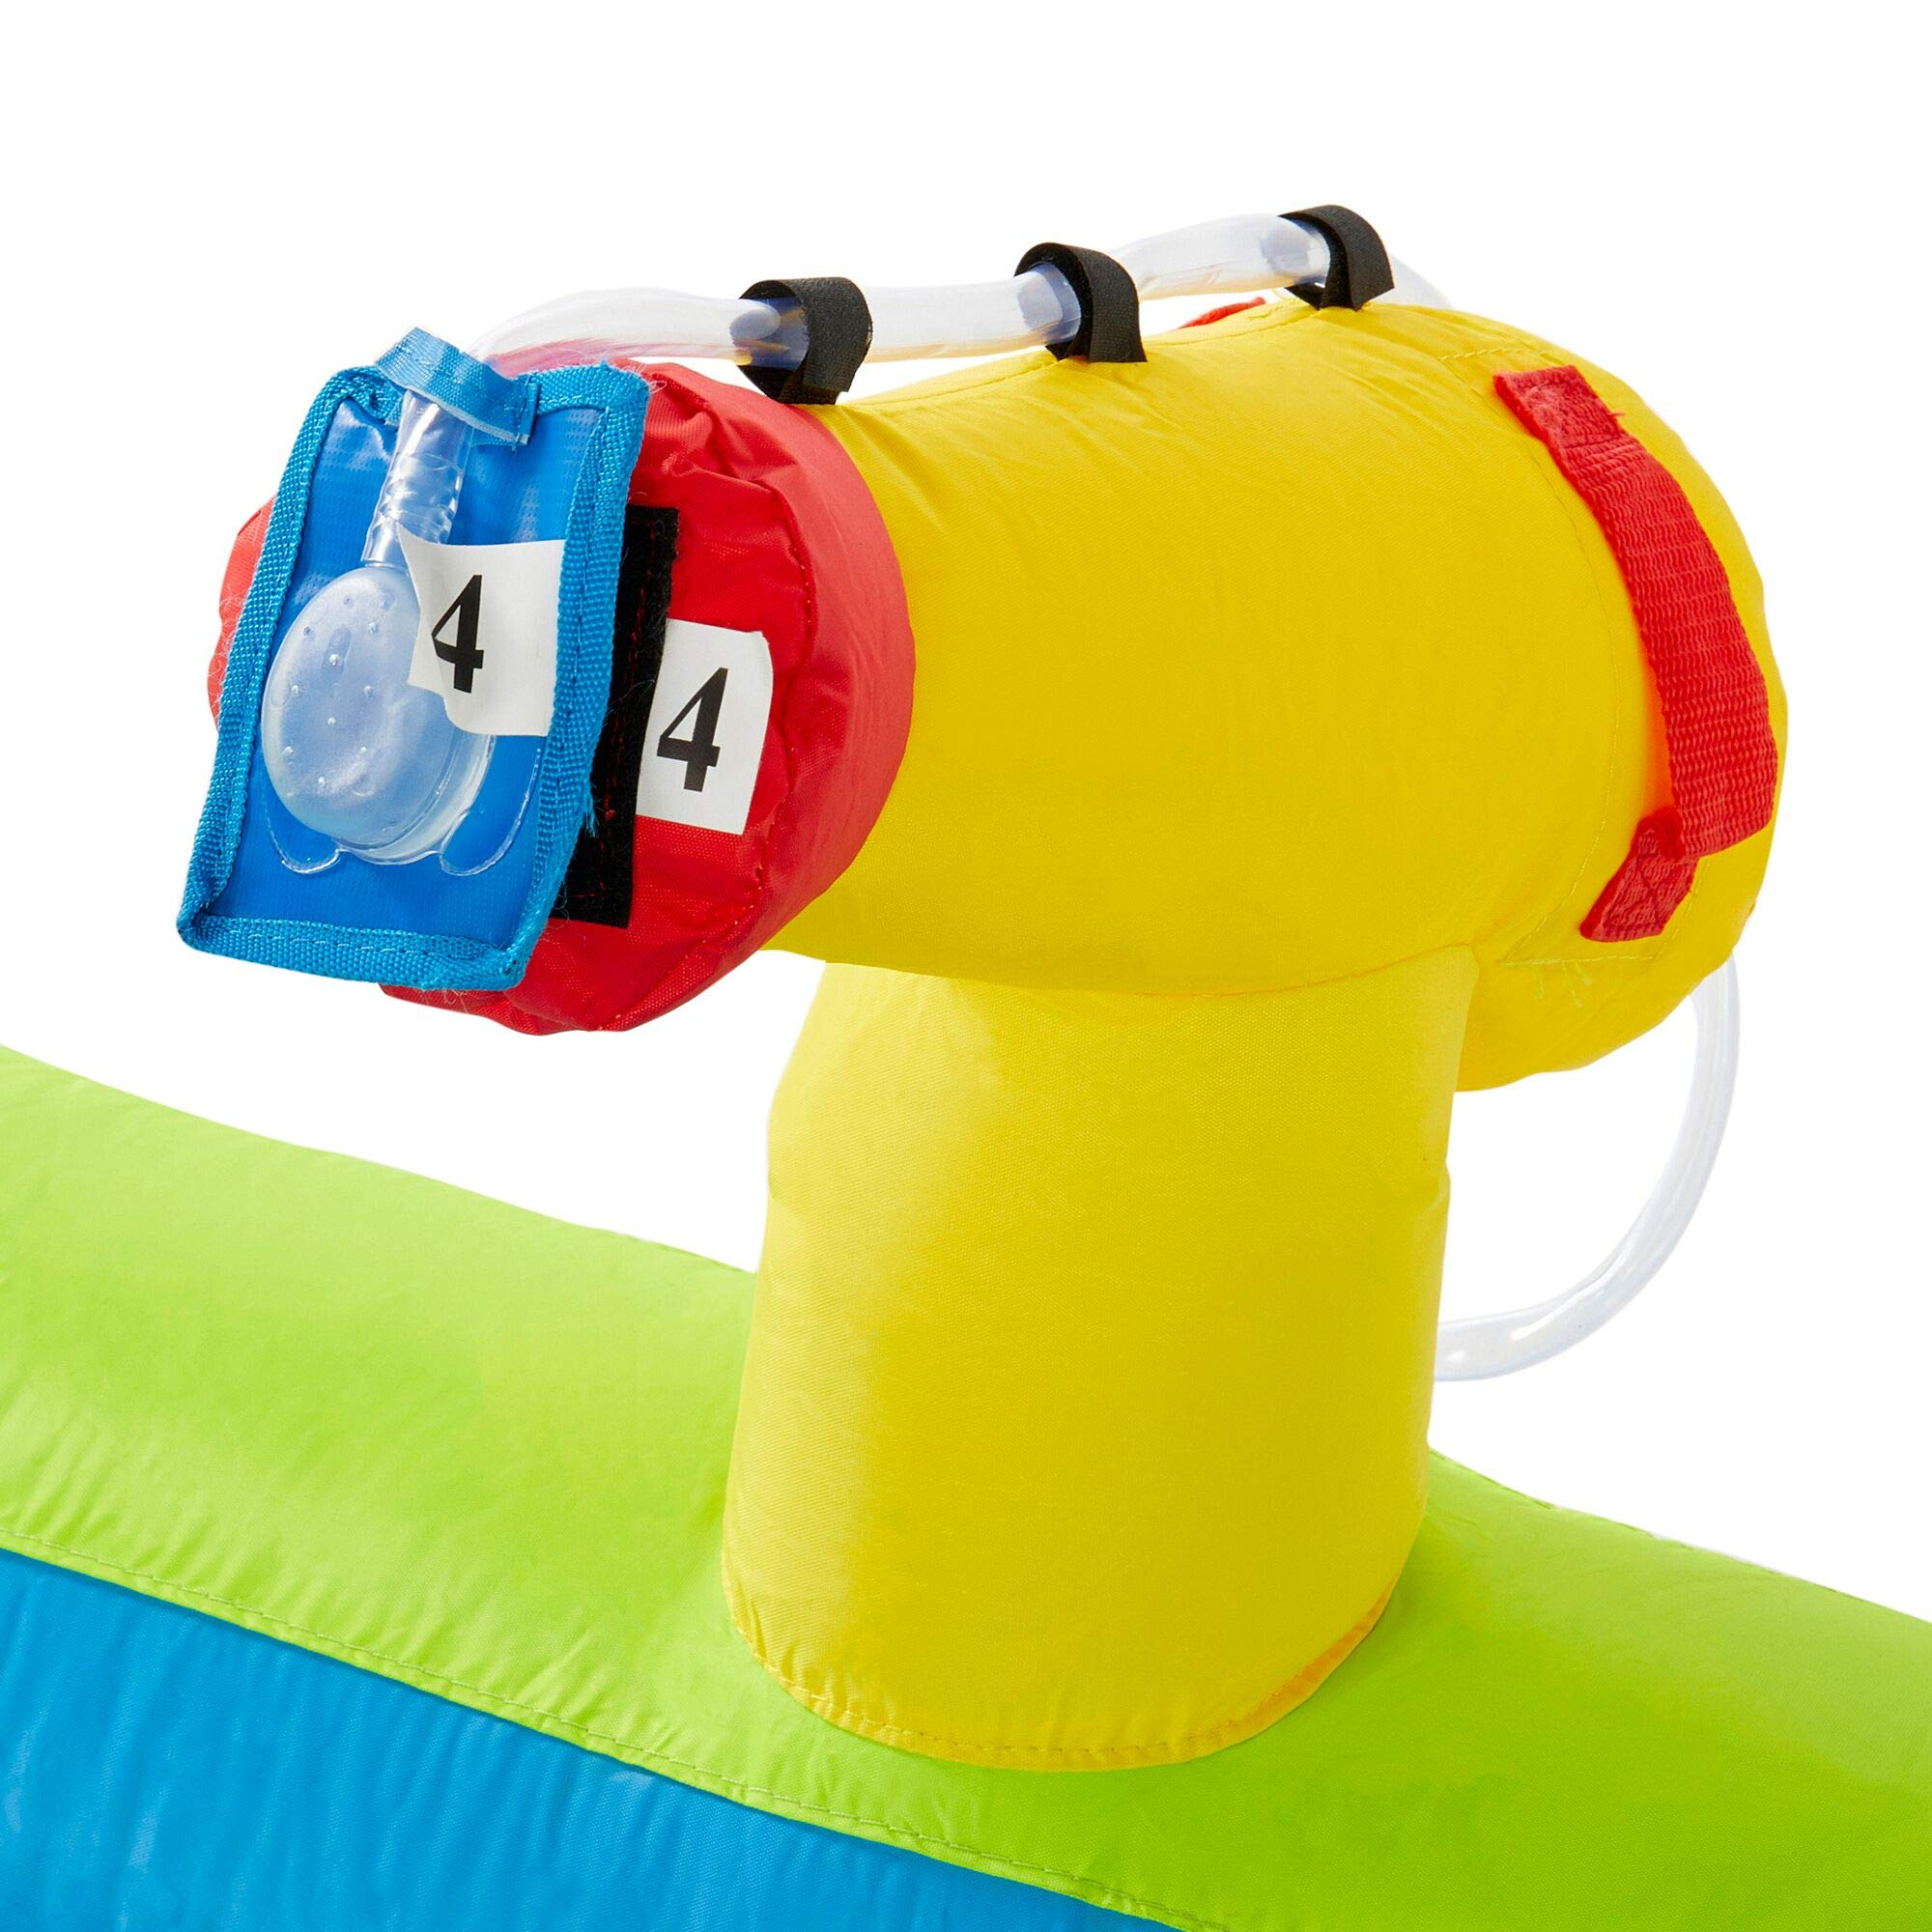 Riptide Triple Fun Inflatable PVC Water Park with 3 Slides & Obstacle Course by Riptide (Image #6)